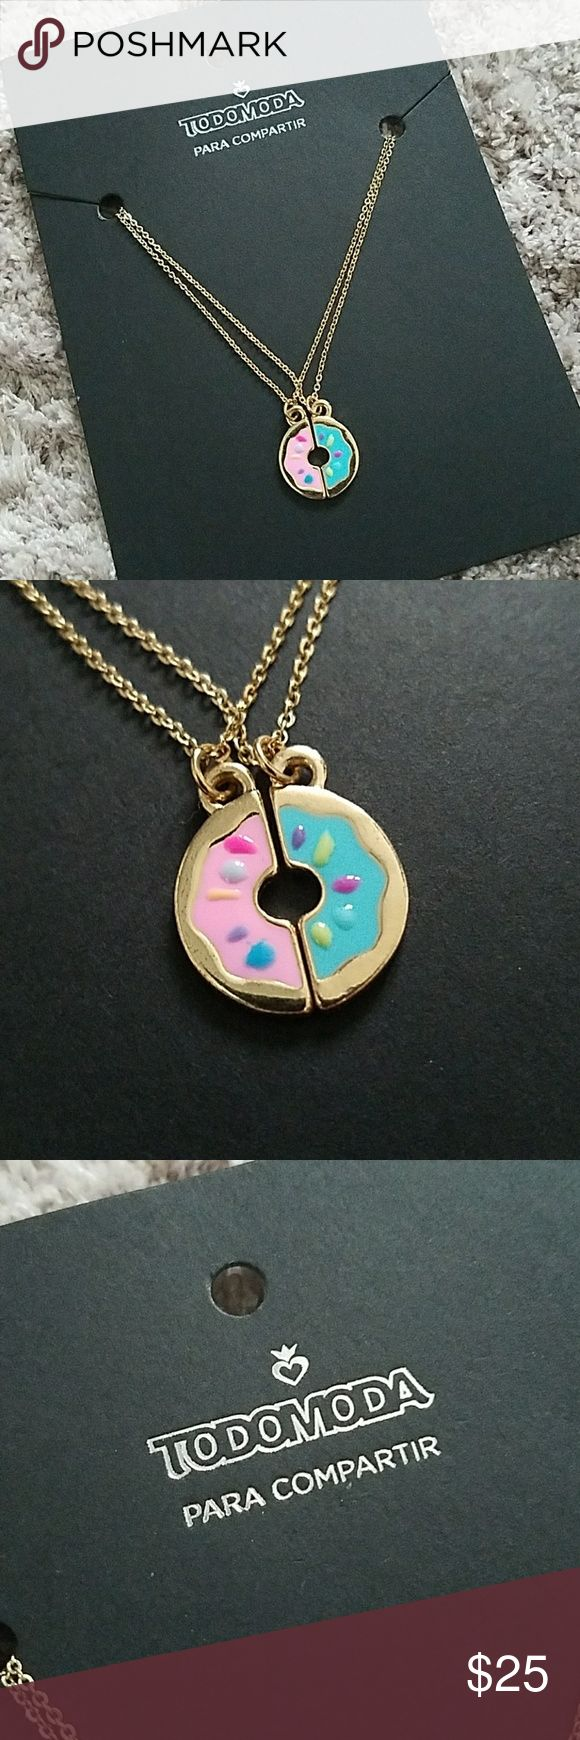 Todomoda Donut Bestfriends Necklace 2 bff necklaces! Purchased outside of us from a store called todomoda, price firm UNIF Jewelry Necklaces